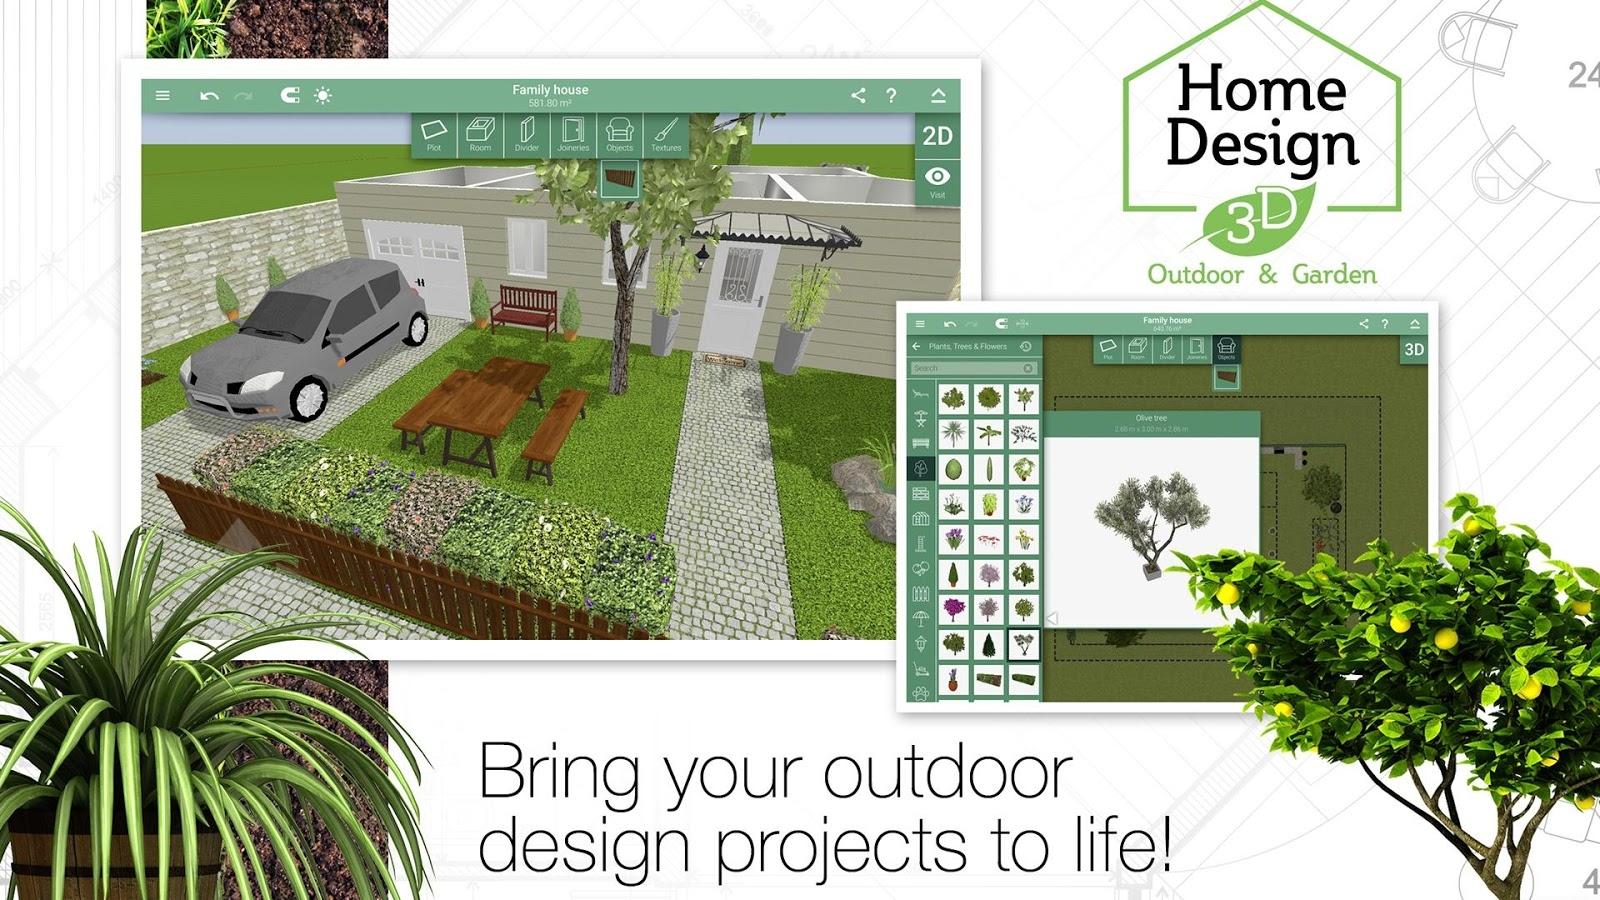 Home Design 3D Outdoor/garden 4.2.4 Apk + Obb (Data File) Download with Garden And House Design Software